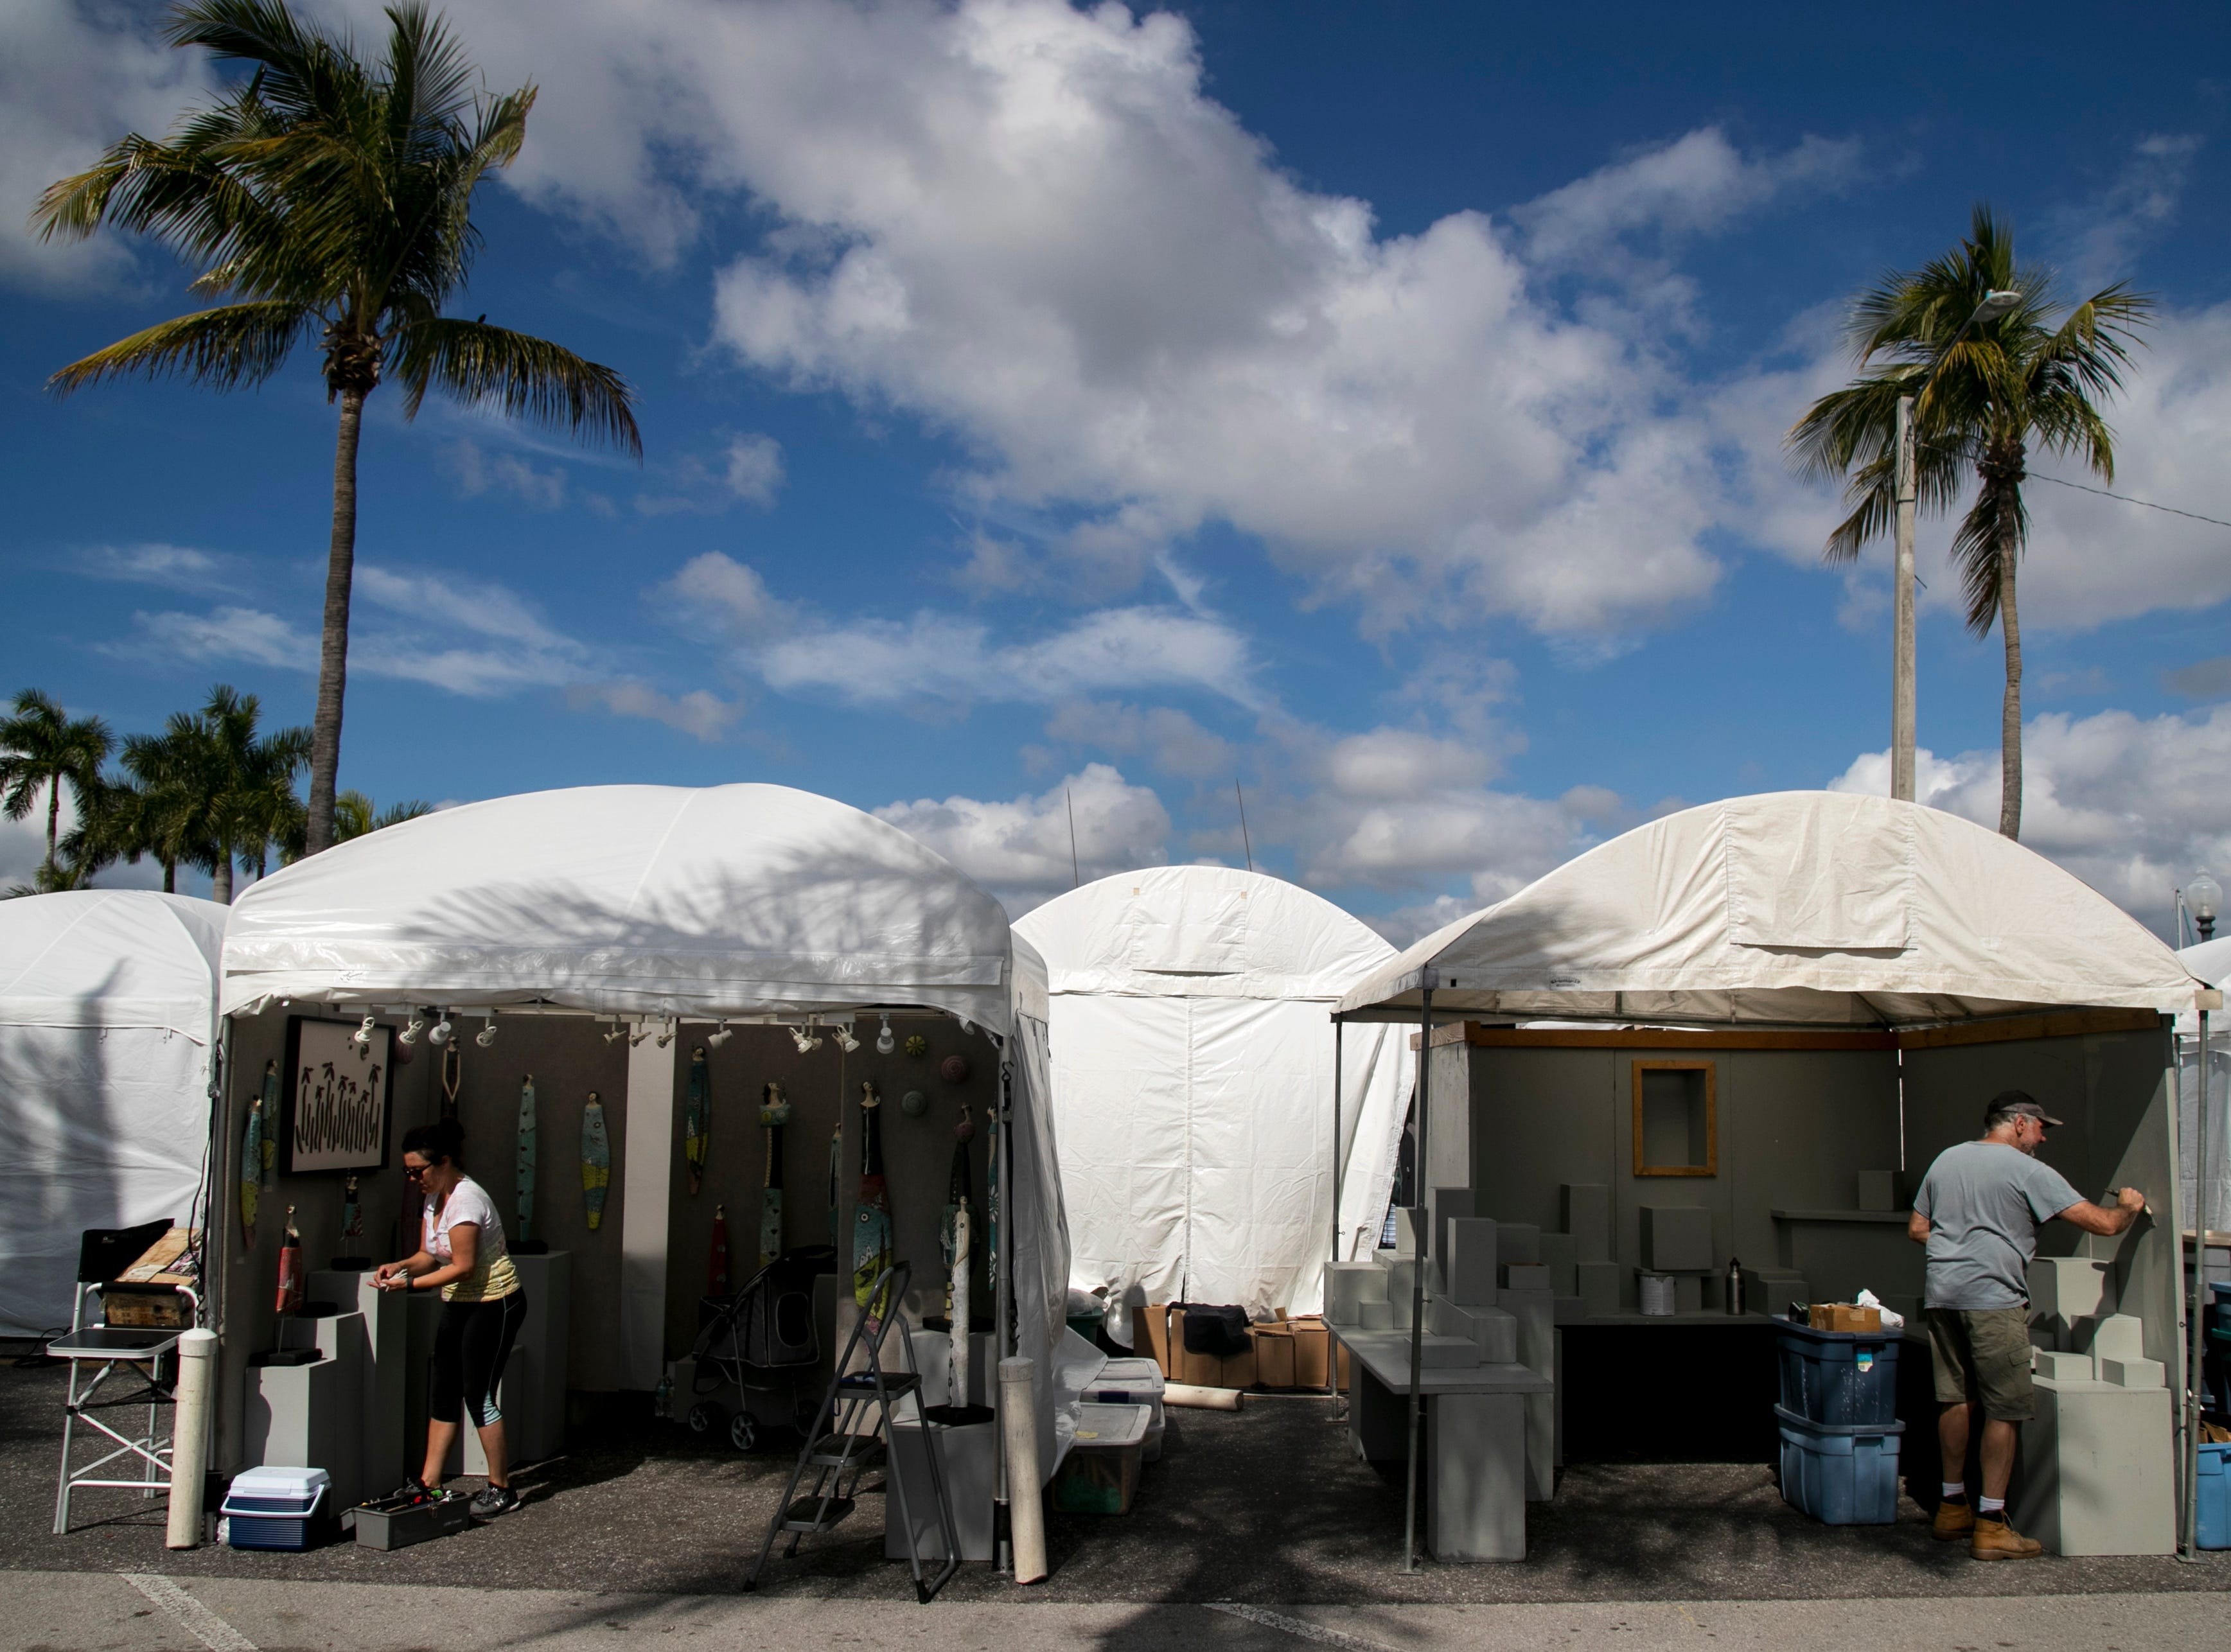 Clay artist Tanya Tyree of Baltimore, left, sets up her tent Friday afternoon, Feb. 1, 2019, while preparing for ArtFest in downtown Fort Myers. More than 200 artists will have their art on display at ArtFest, which is open Saturday and Sunday from 10 am to 5 pm.